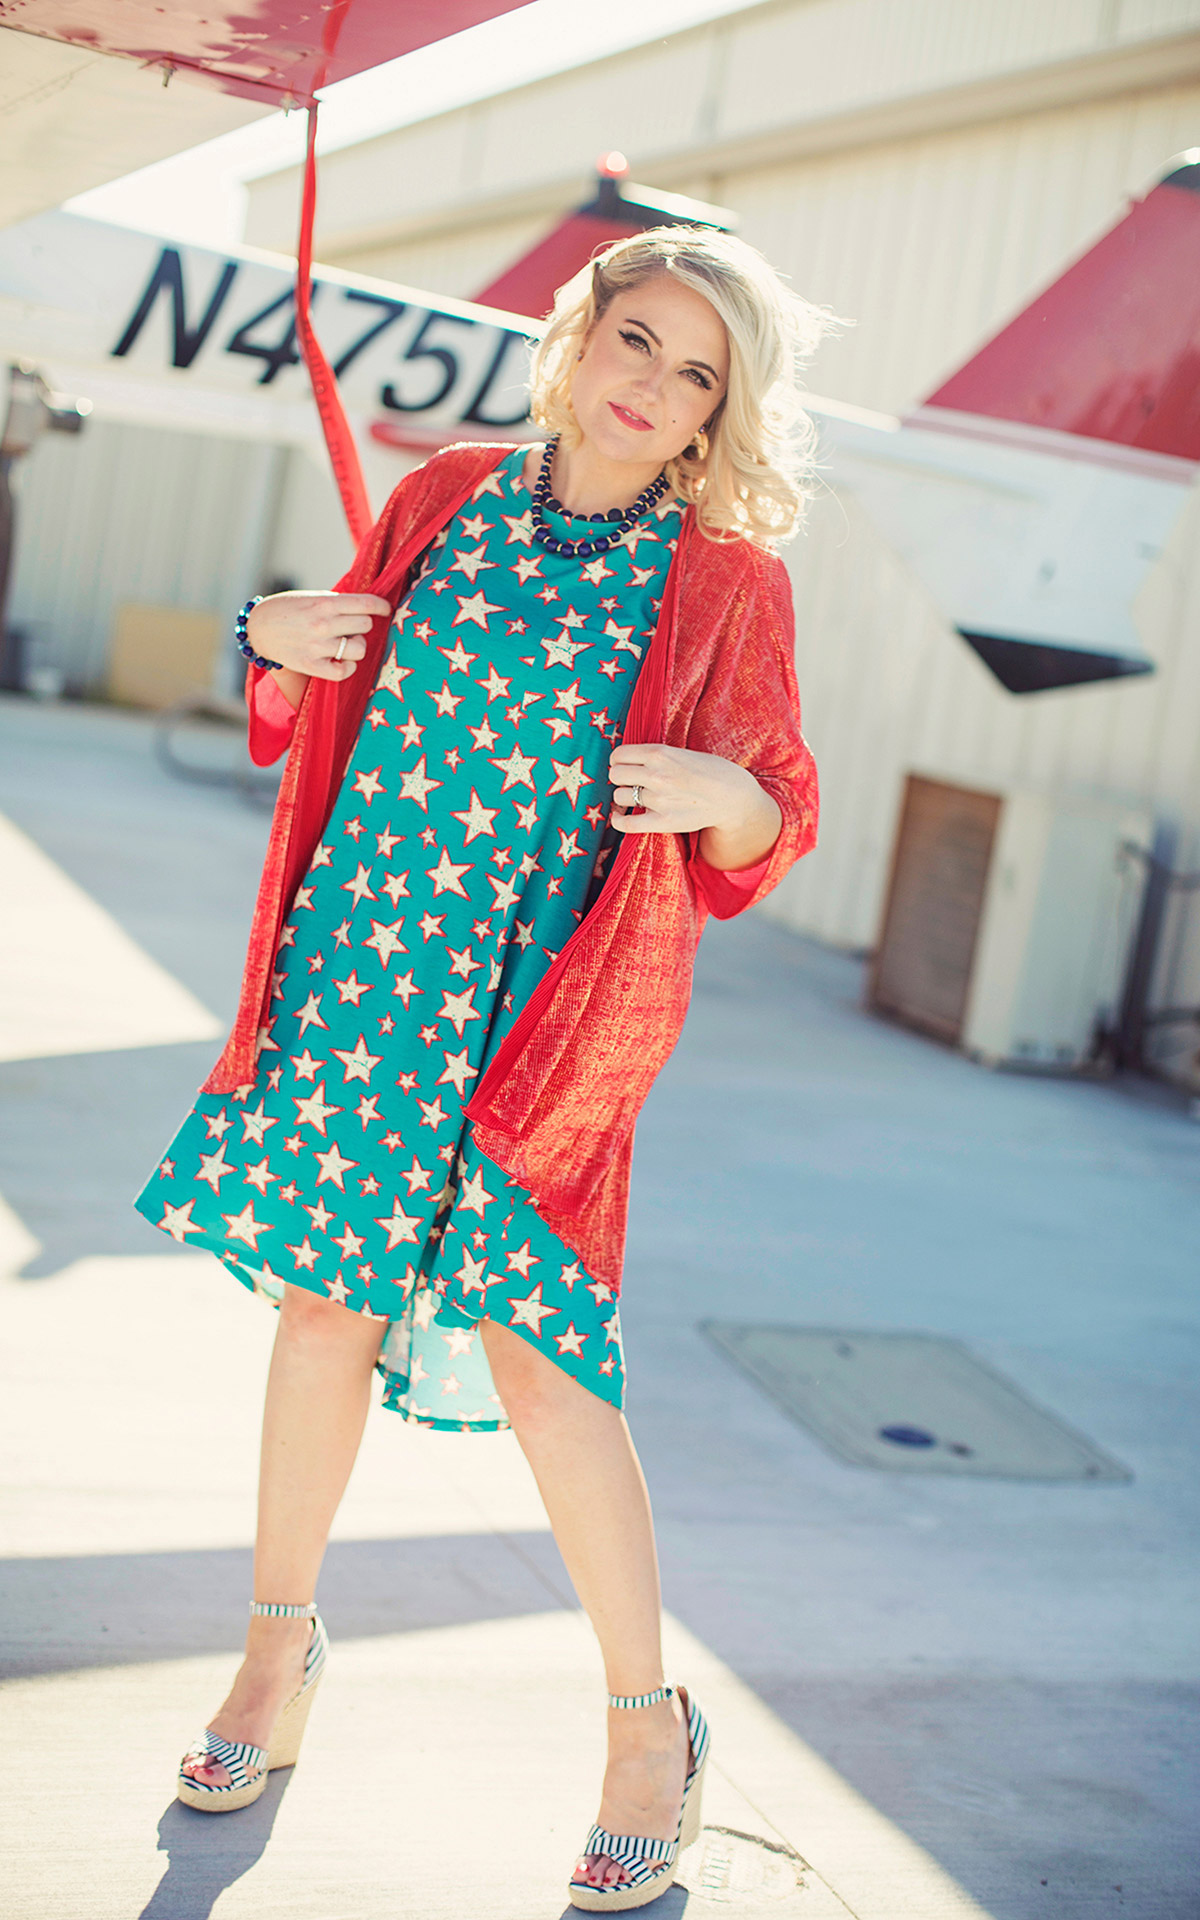 LuLaRoe-Carly-T-Shirt-High-Low-Dress-turquoise-stars-red-and-white.jpg